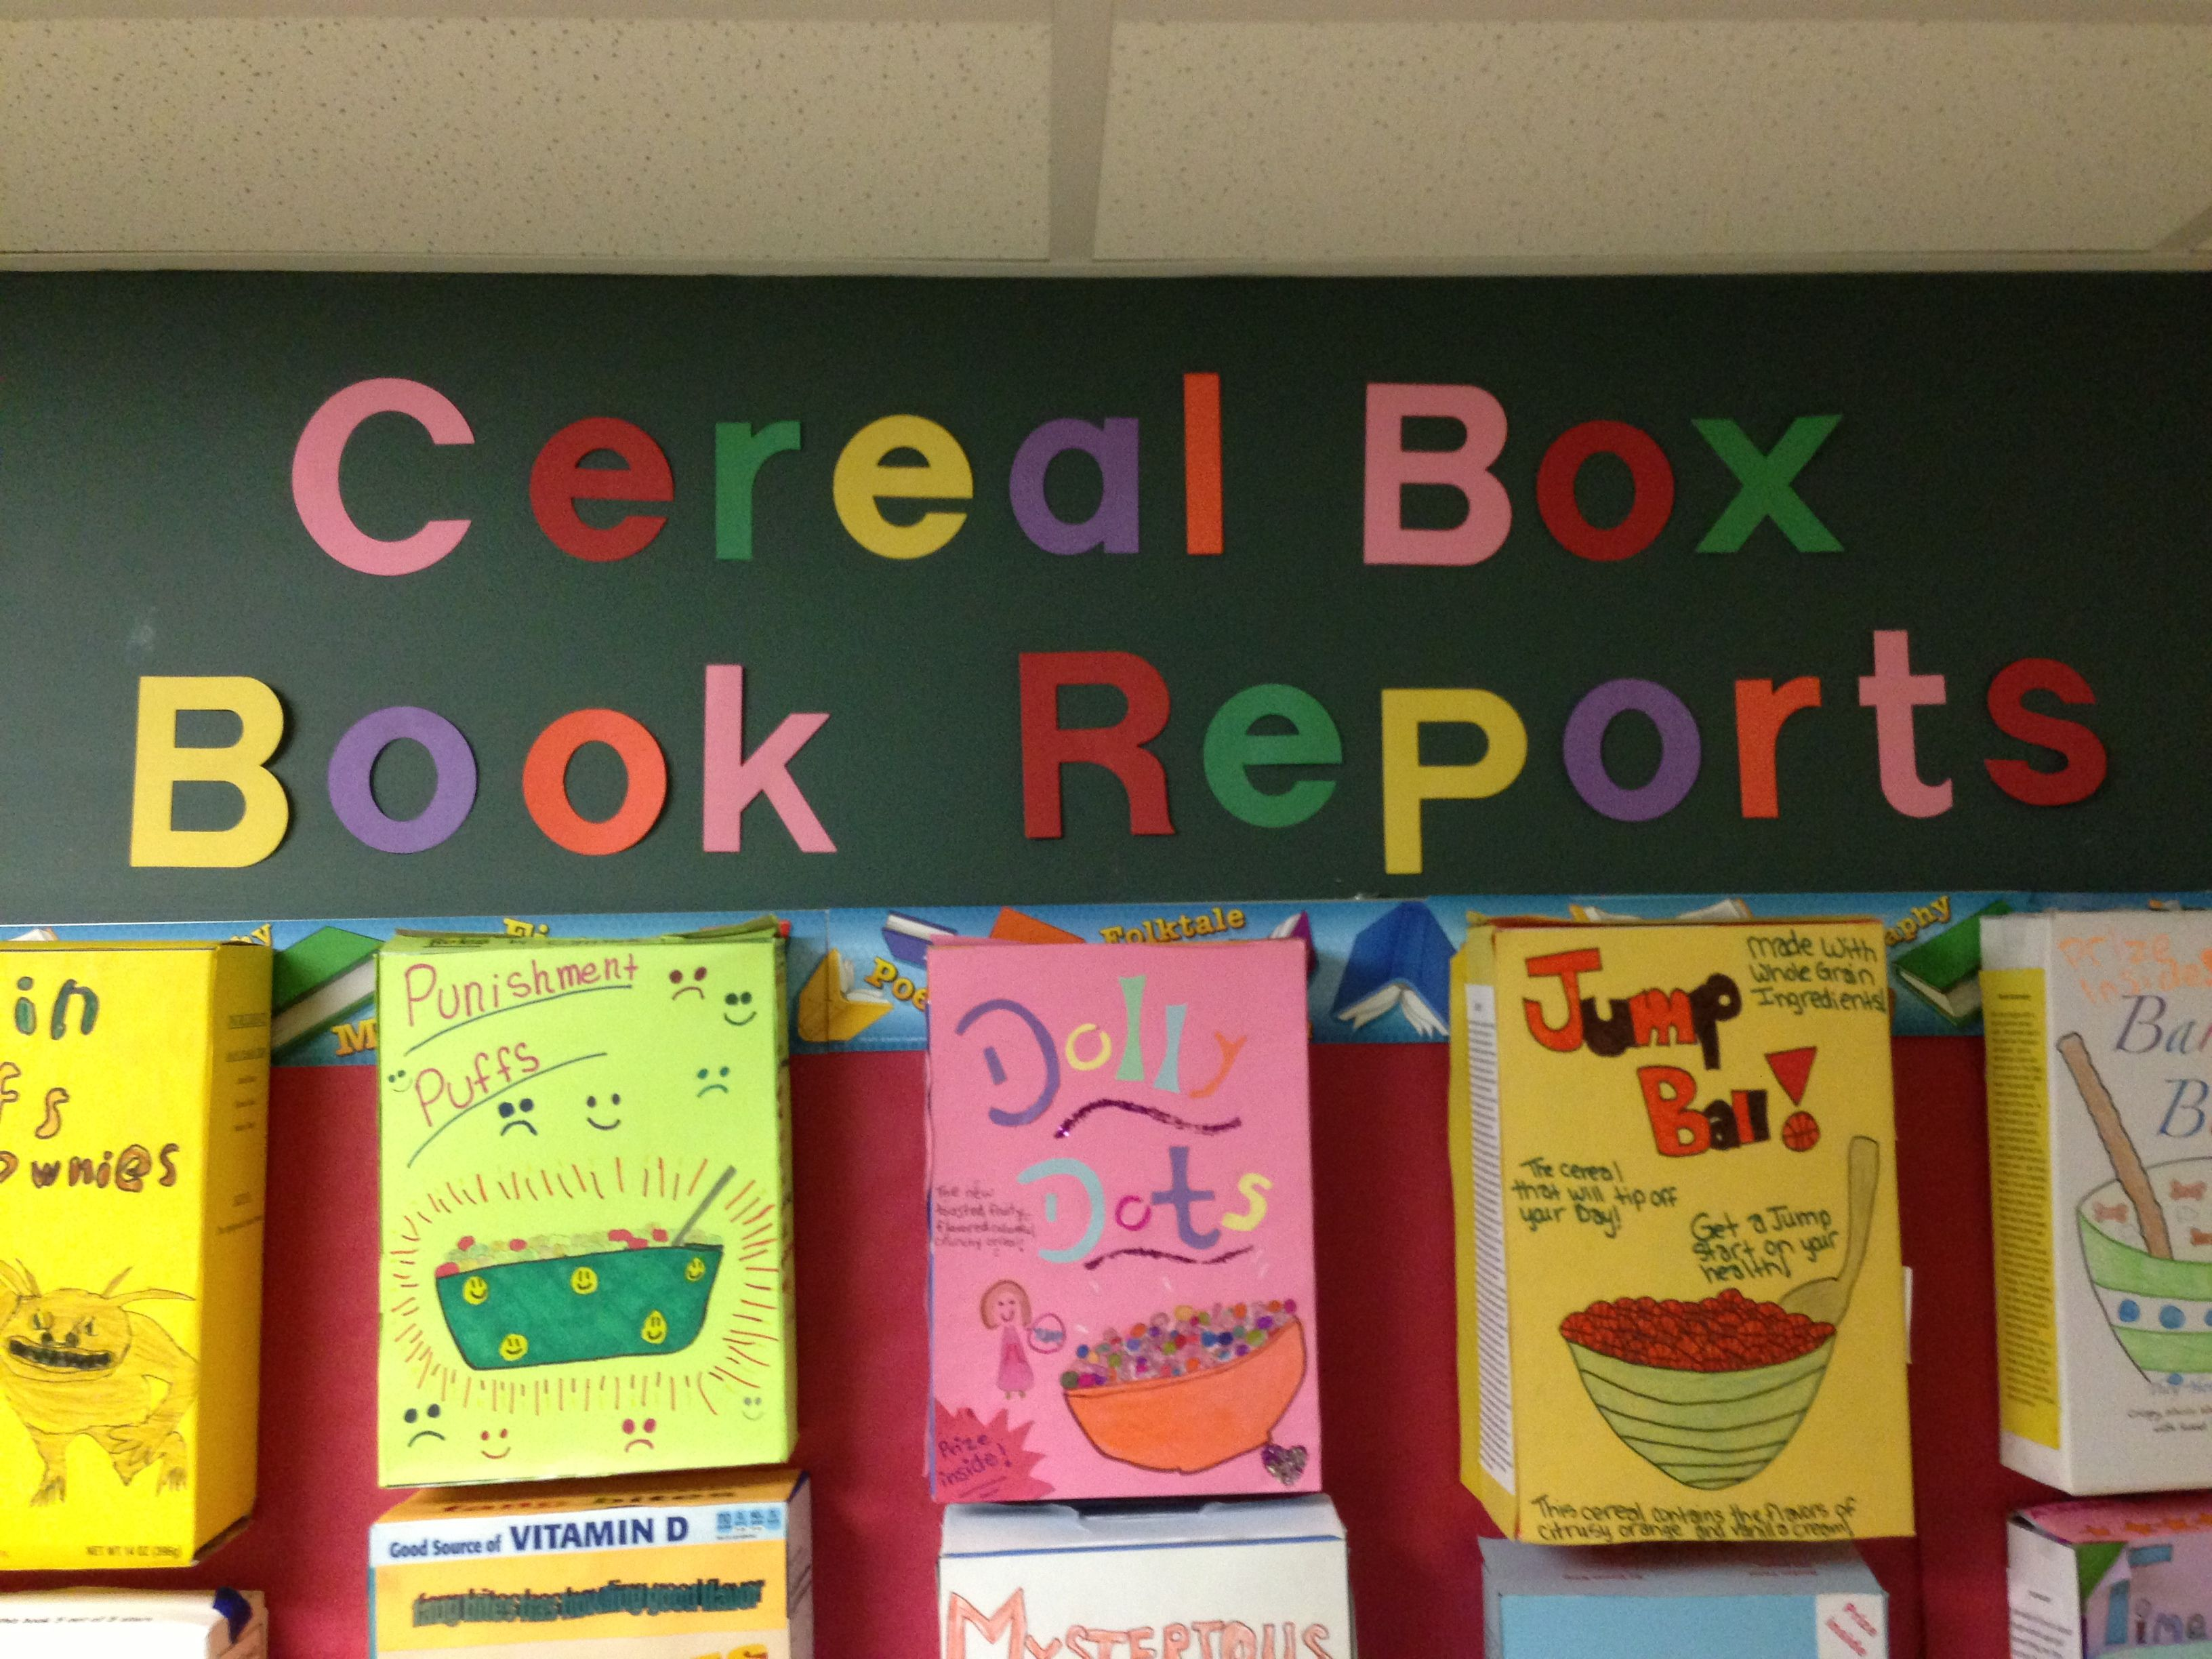 cereal box book report assignment Cereal box book report  homework assignments during this time, i expect them to take the majority of the  your cereal box (you will probably want to create the .